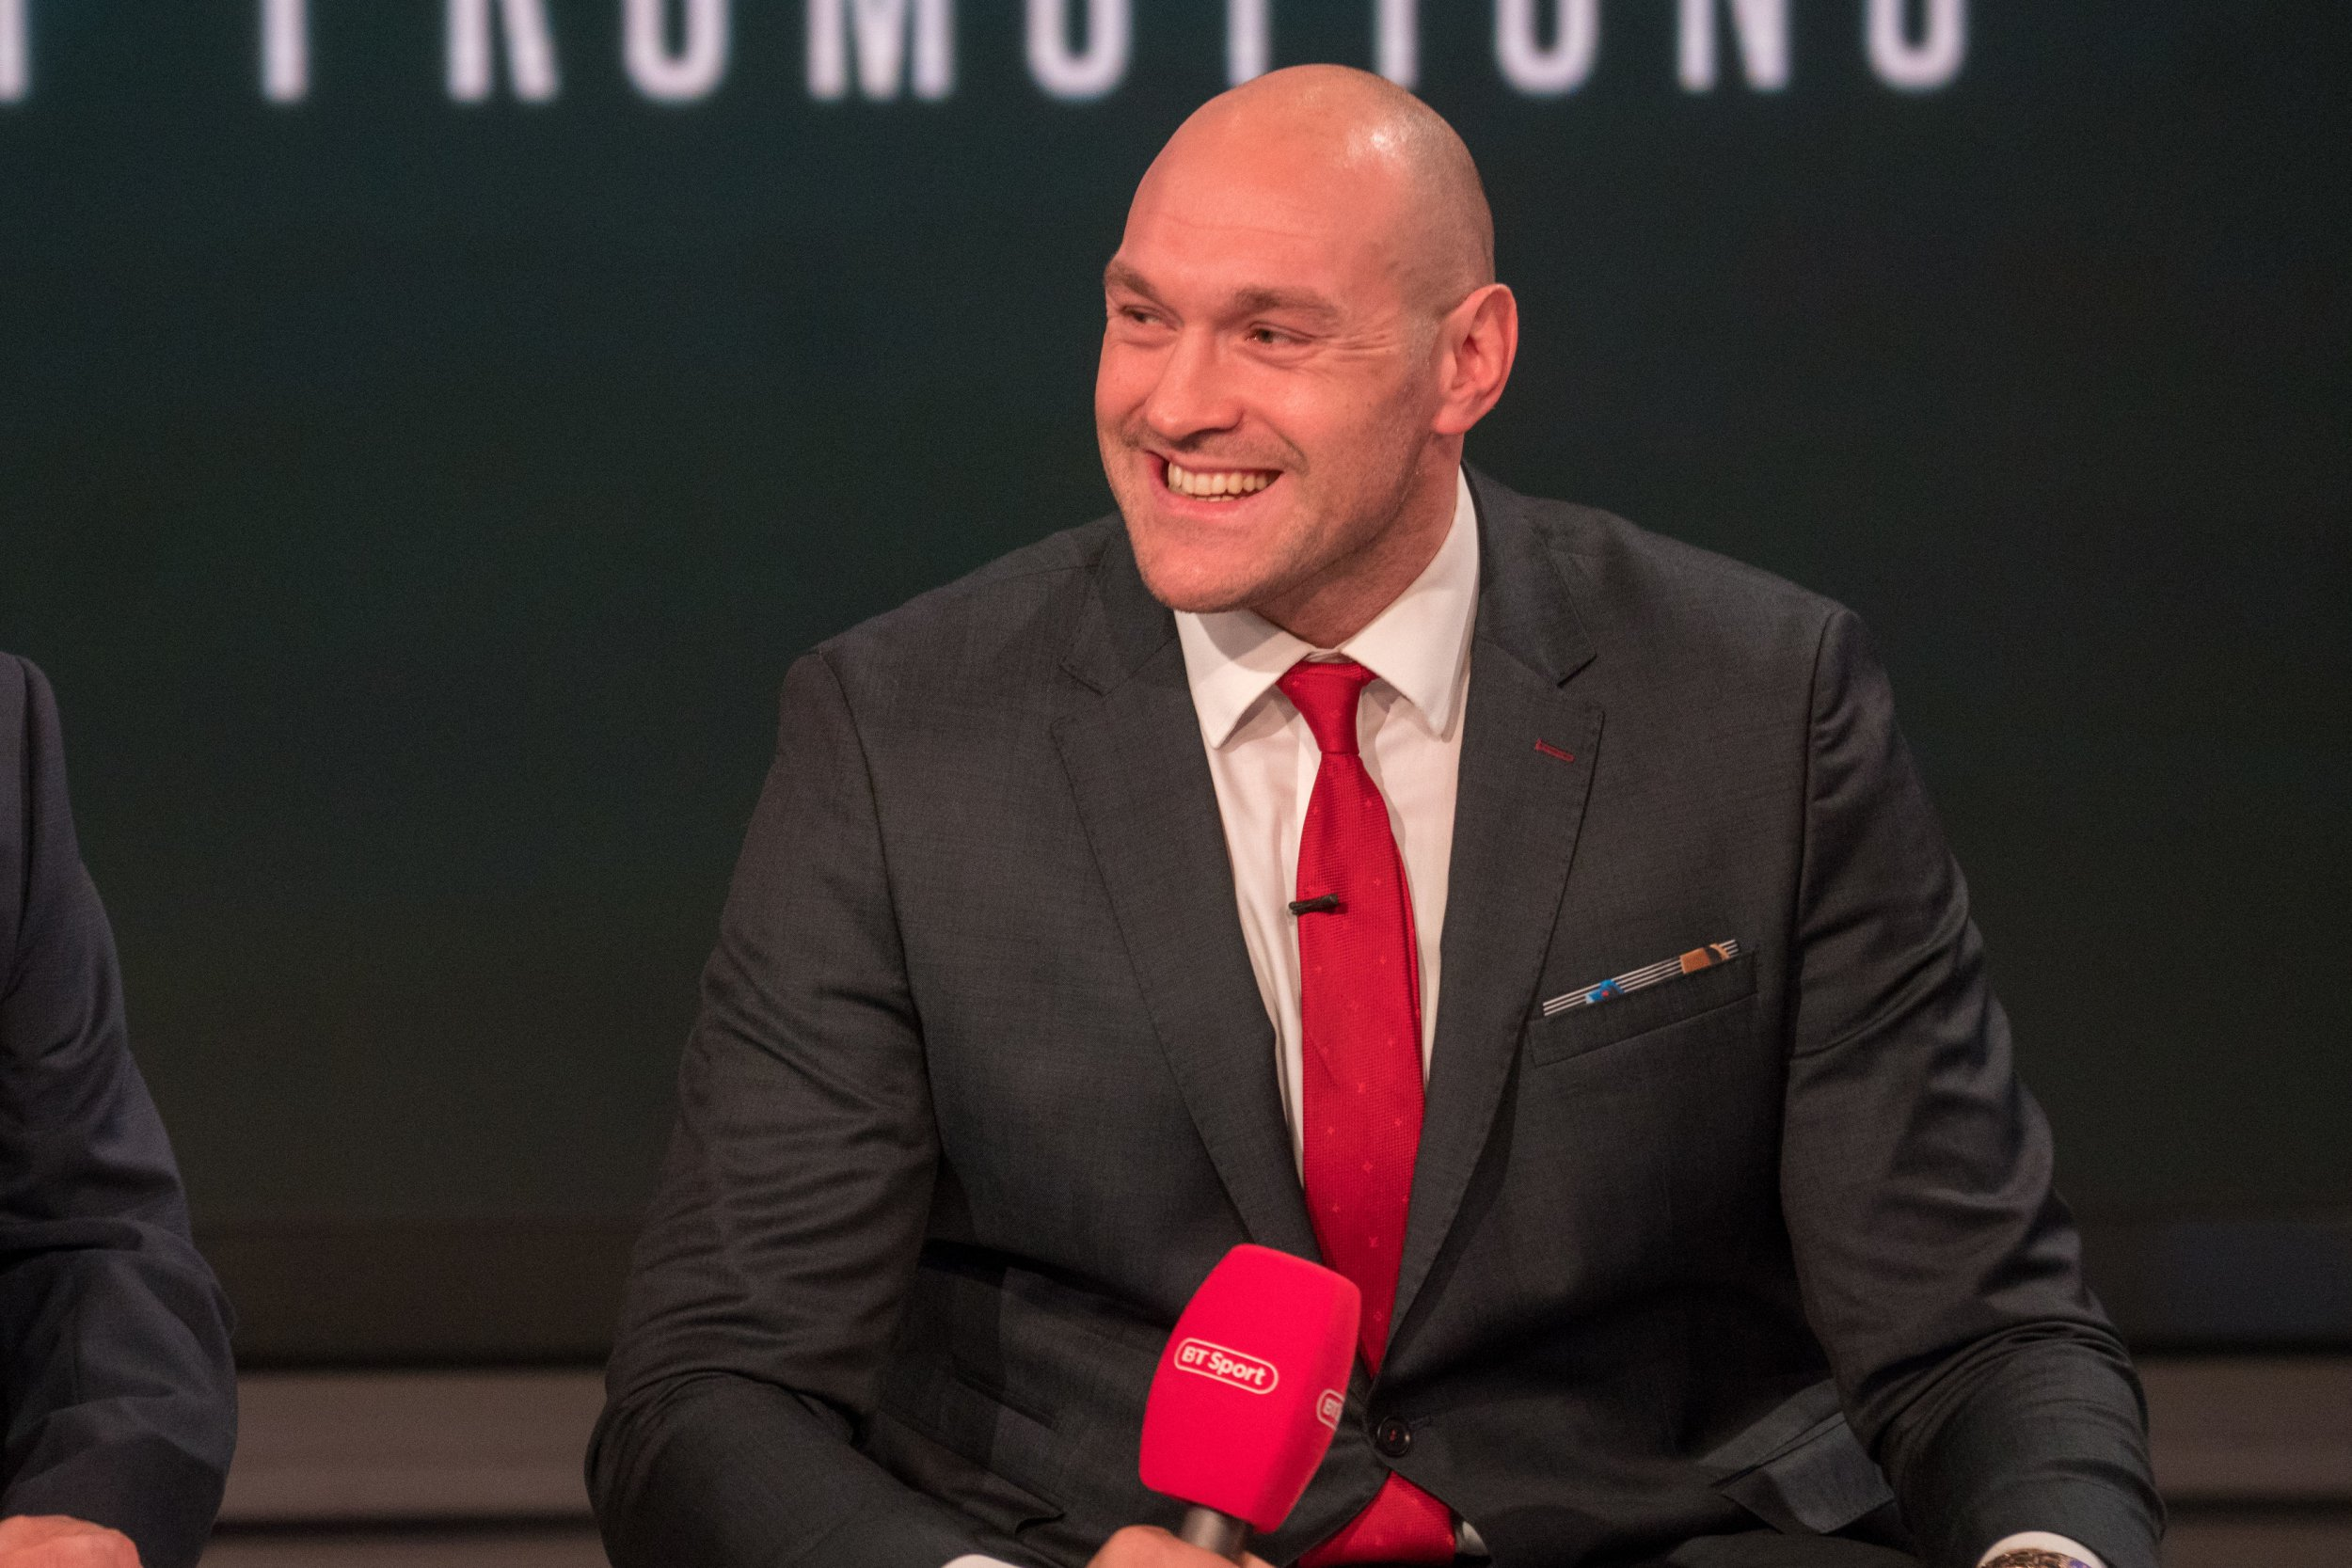 Tyson Fury confirms he will fight in Las Vegas next but is still waiting for an opponent